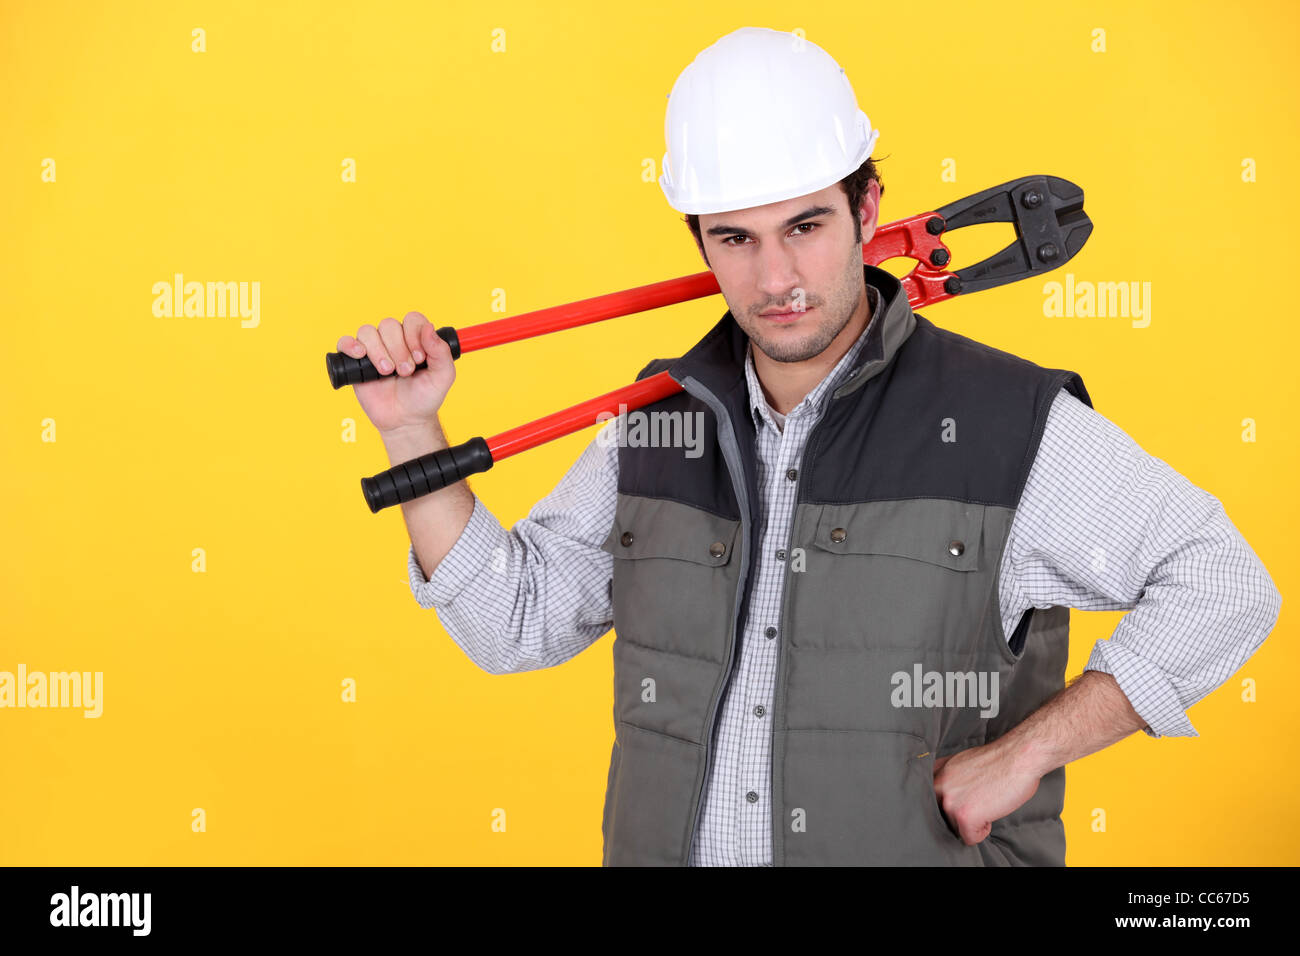 Tradesman carrying a pair of large clippers on his shoulder Stock Photo